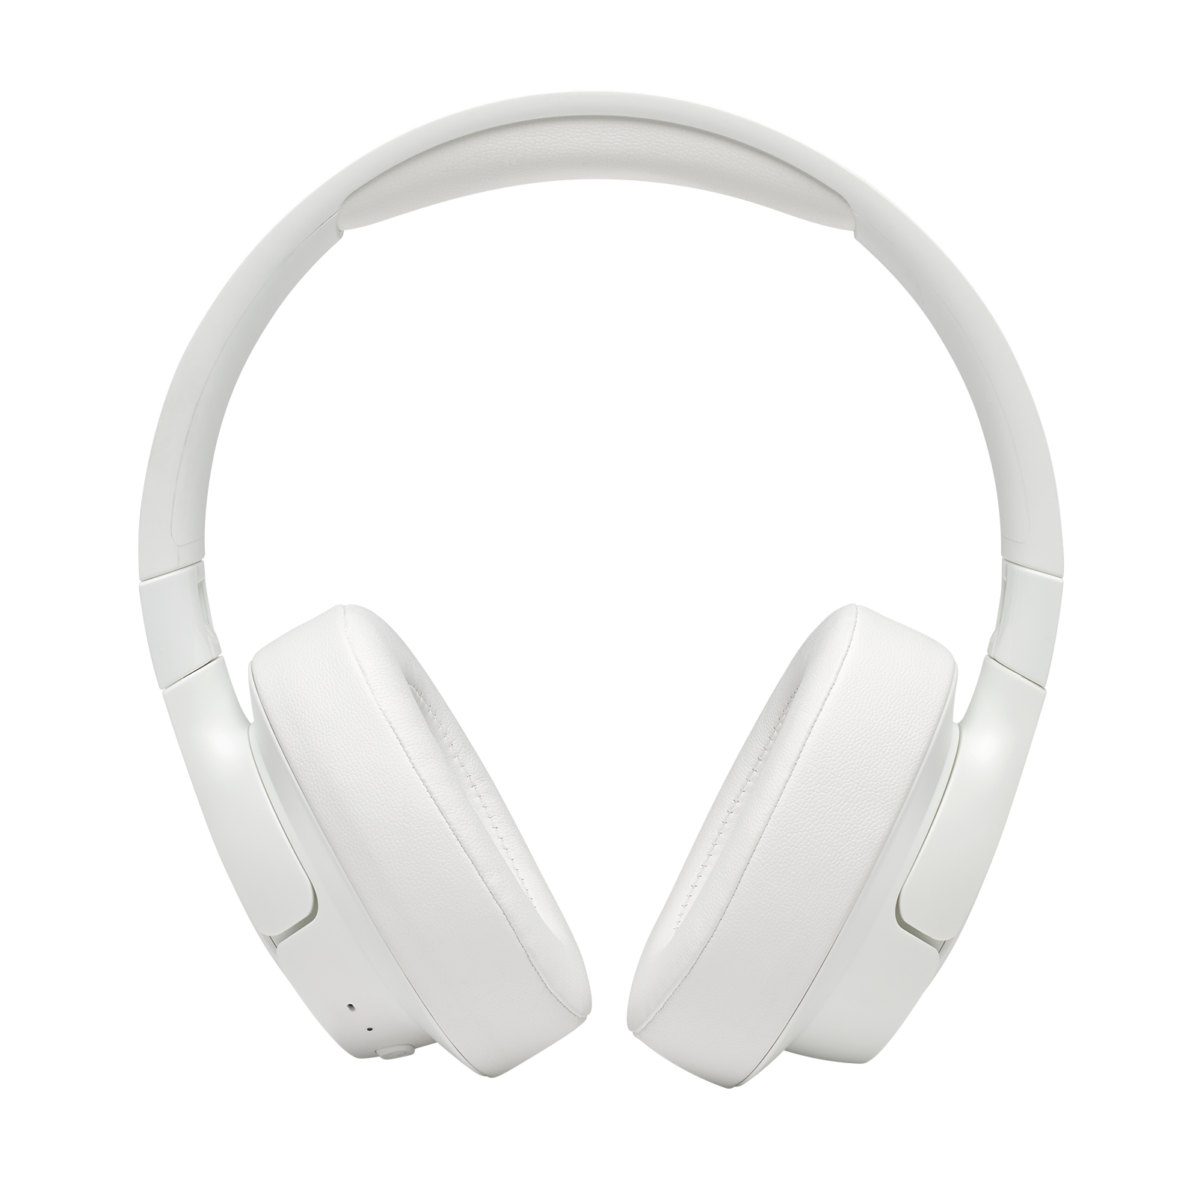 JBL TUNE700BT ProductImage Front White